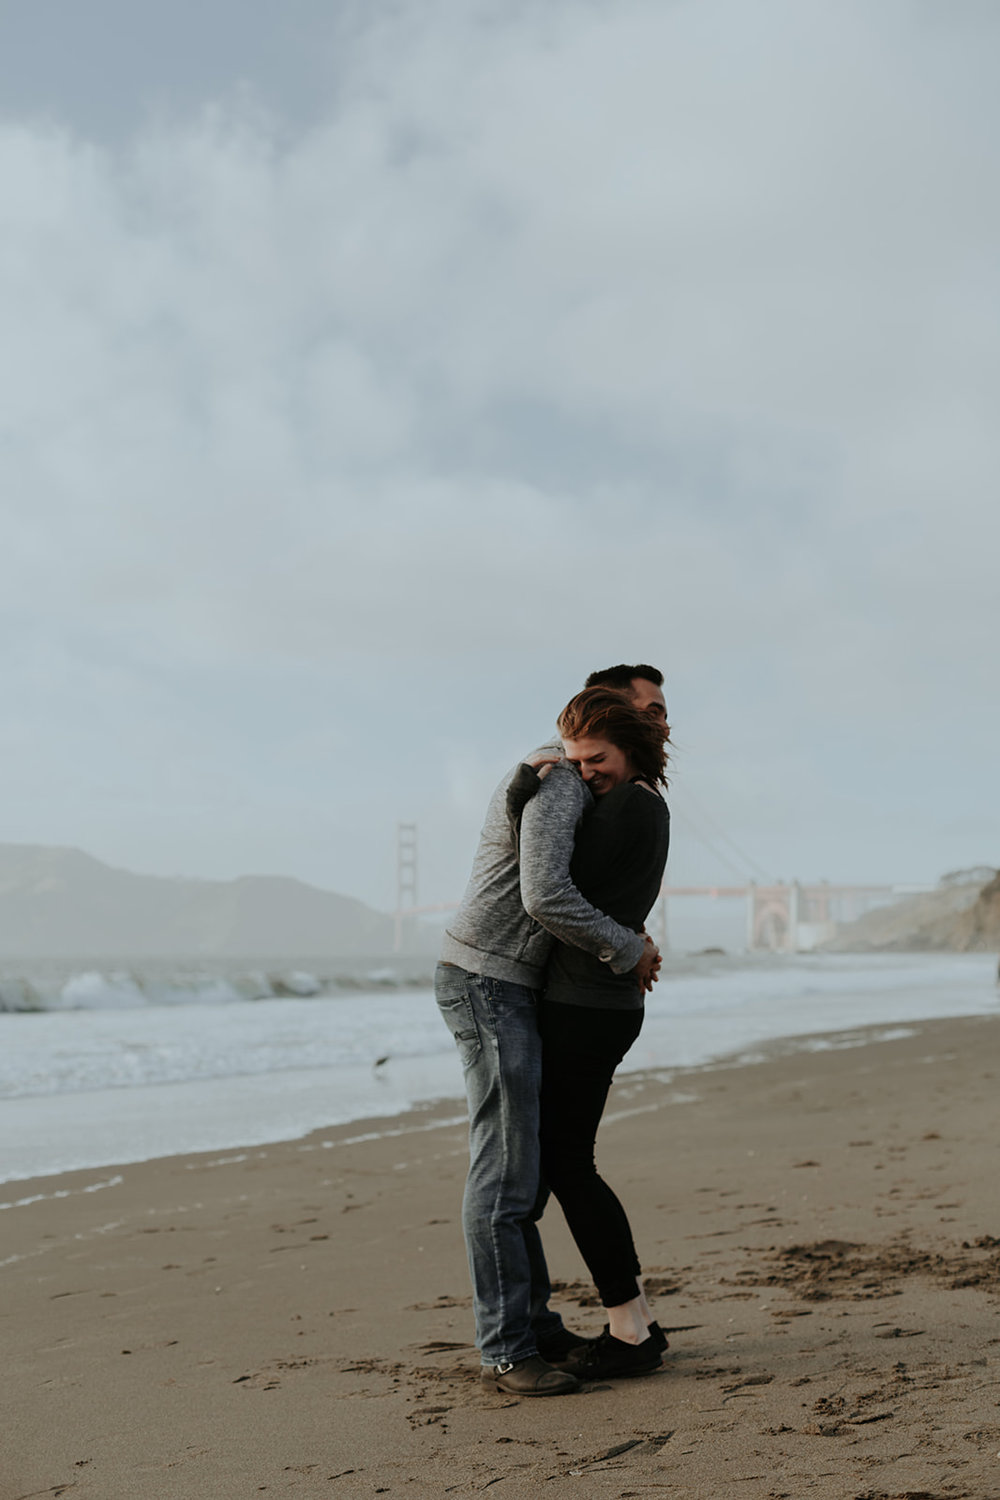 Rachel-and-Duncan-sanfran-engagement-session-earthbelowphoto-2018-41.jpg